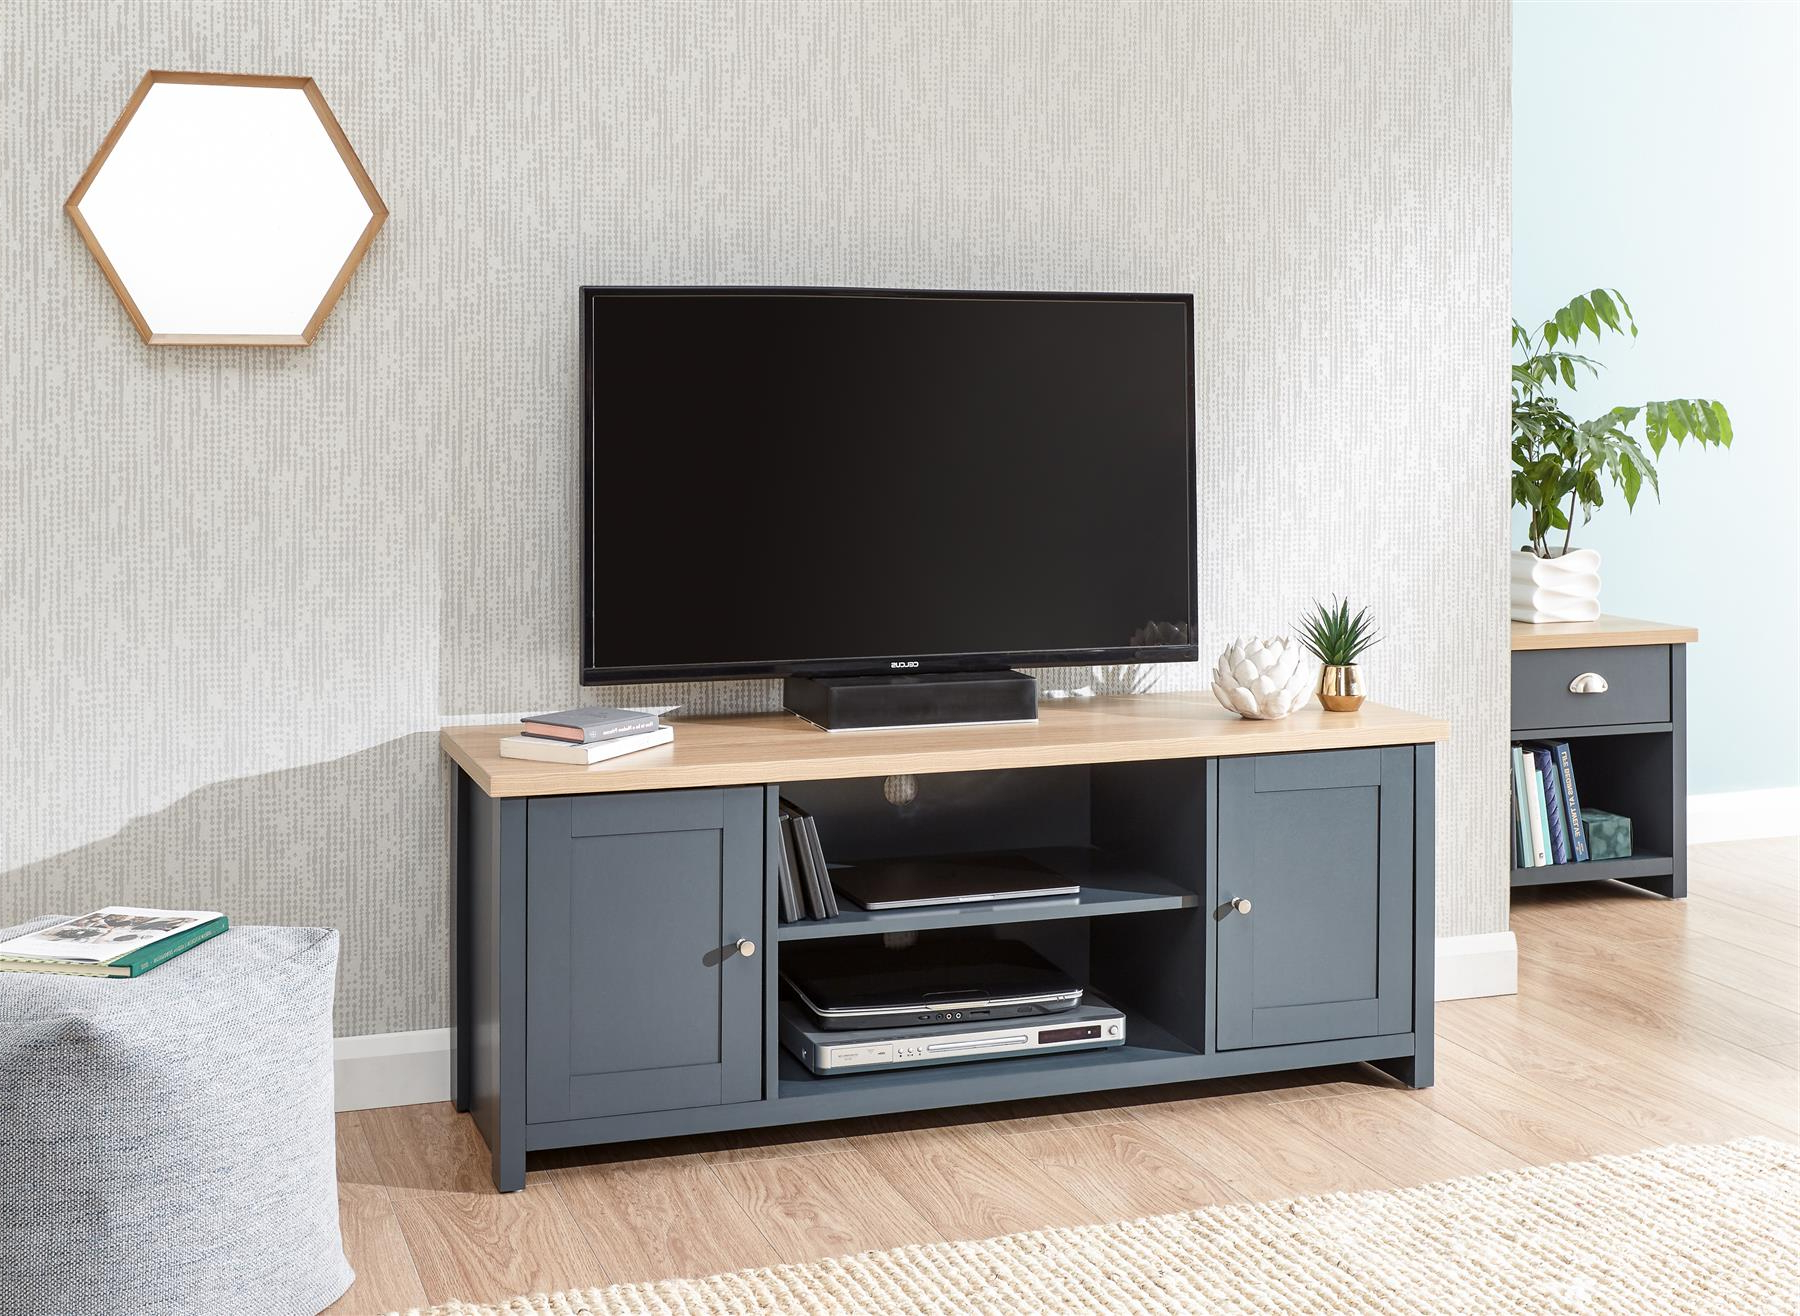 Lancaster Corner Tv Stands With Well Known Lancaster Coffee Table Lamp Table Tv Stand Cabinet (View 6 of 10)